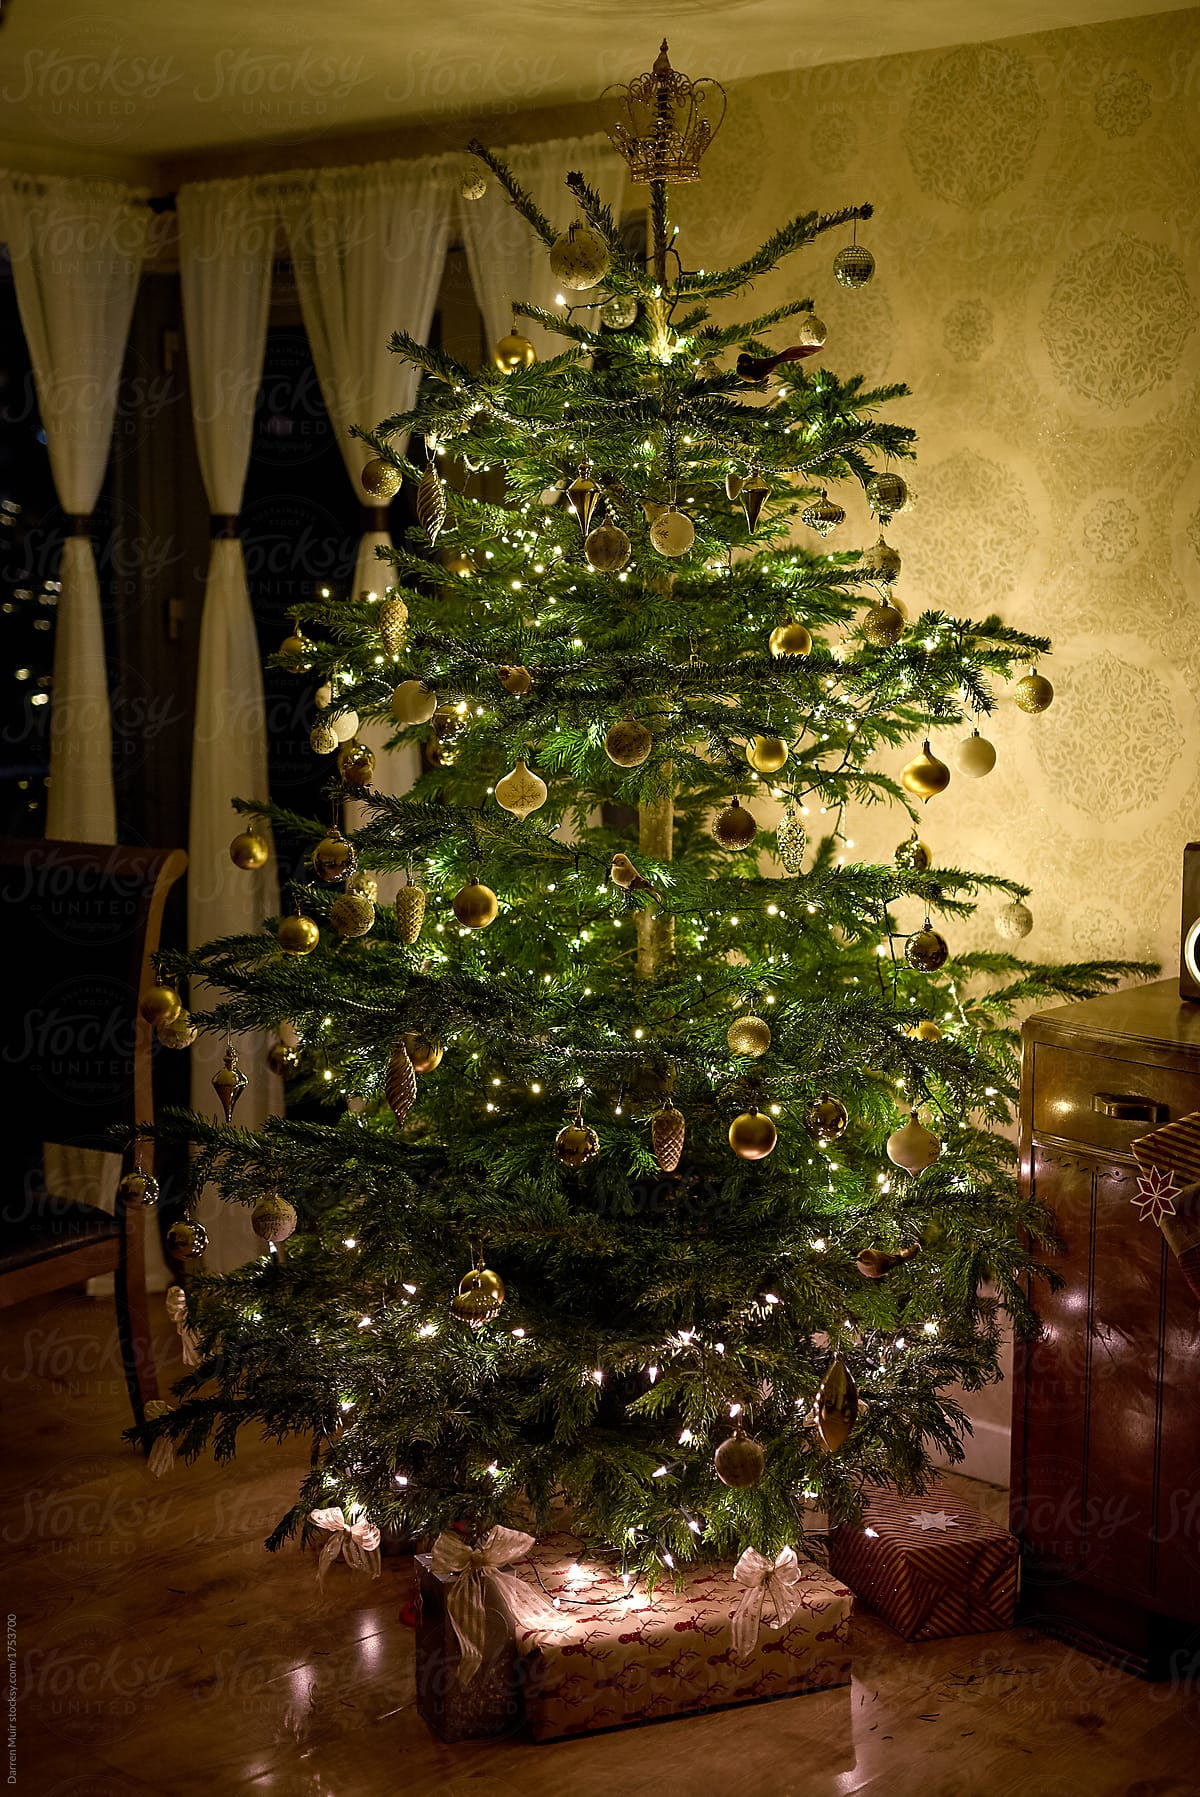 Traditional Real Christmas Tree In A Living Room At Night